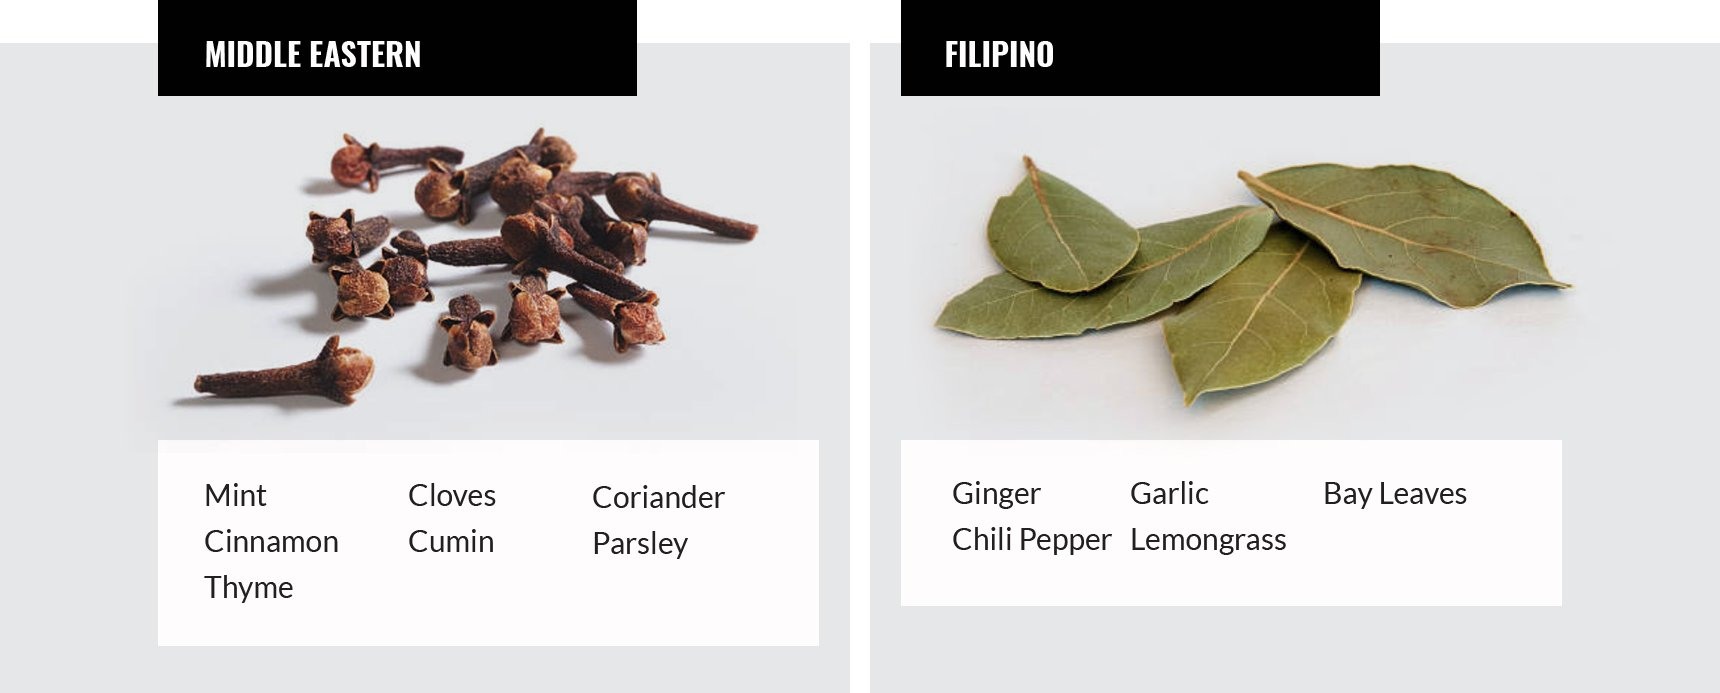 Middle Eastern and Filipino spices